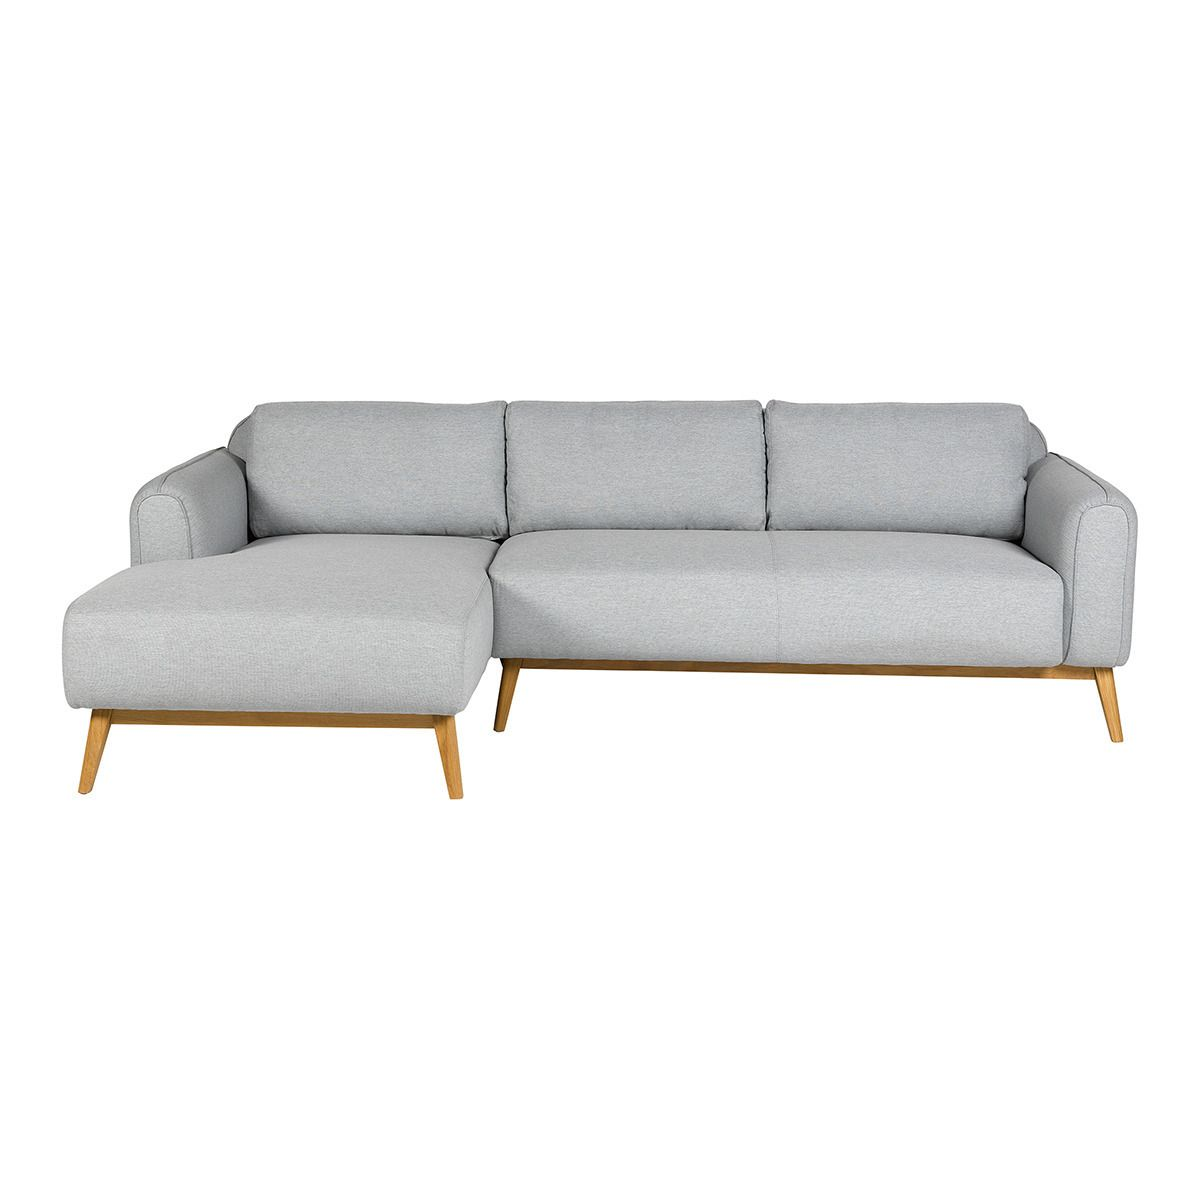 Sofá tapizado de 5 plazas con chaise longue izquierdo Green on pillow sofa, storage sofa, lounge sofa, recliner sofa, bedroom sofa, ottoman sofa, bench sofa, beds sofa, art sofa, bookcase sofa, cushions sofa, futon sofa, mattress sofa, table sofa, glider sofa, settee sofa, divan sofa, couch sofa, fabric sofa, chair sofa,